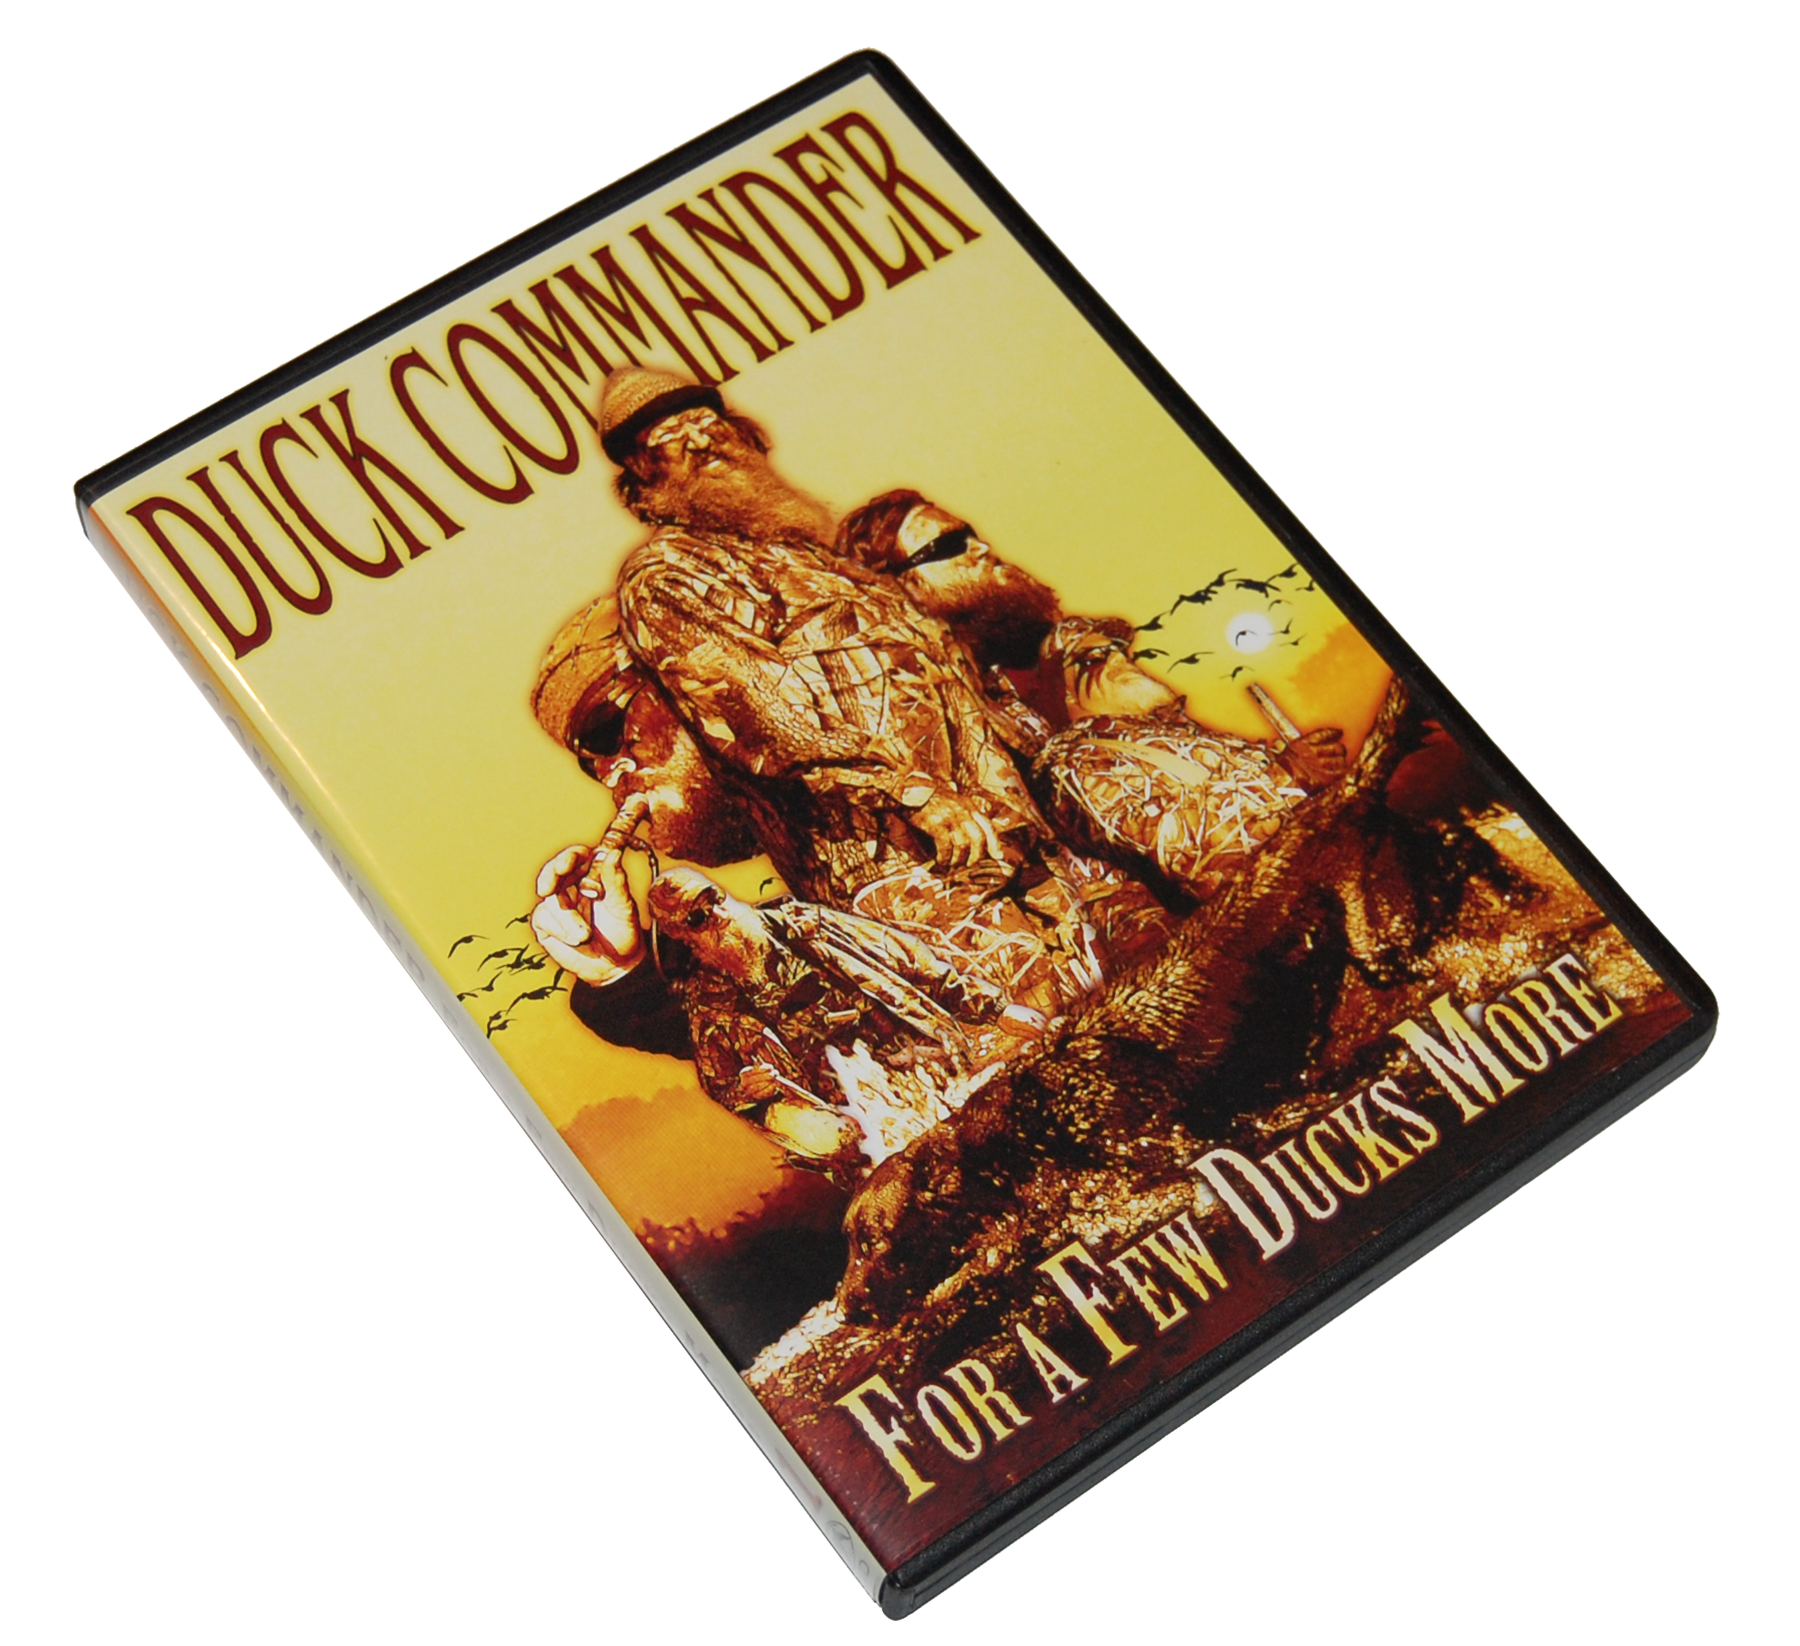 Duck Commander DD11 For A Few Ducks More - Duckmen 11 DVD 80 Minutes 2007